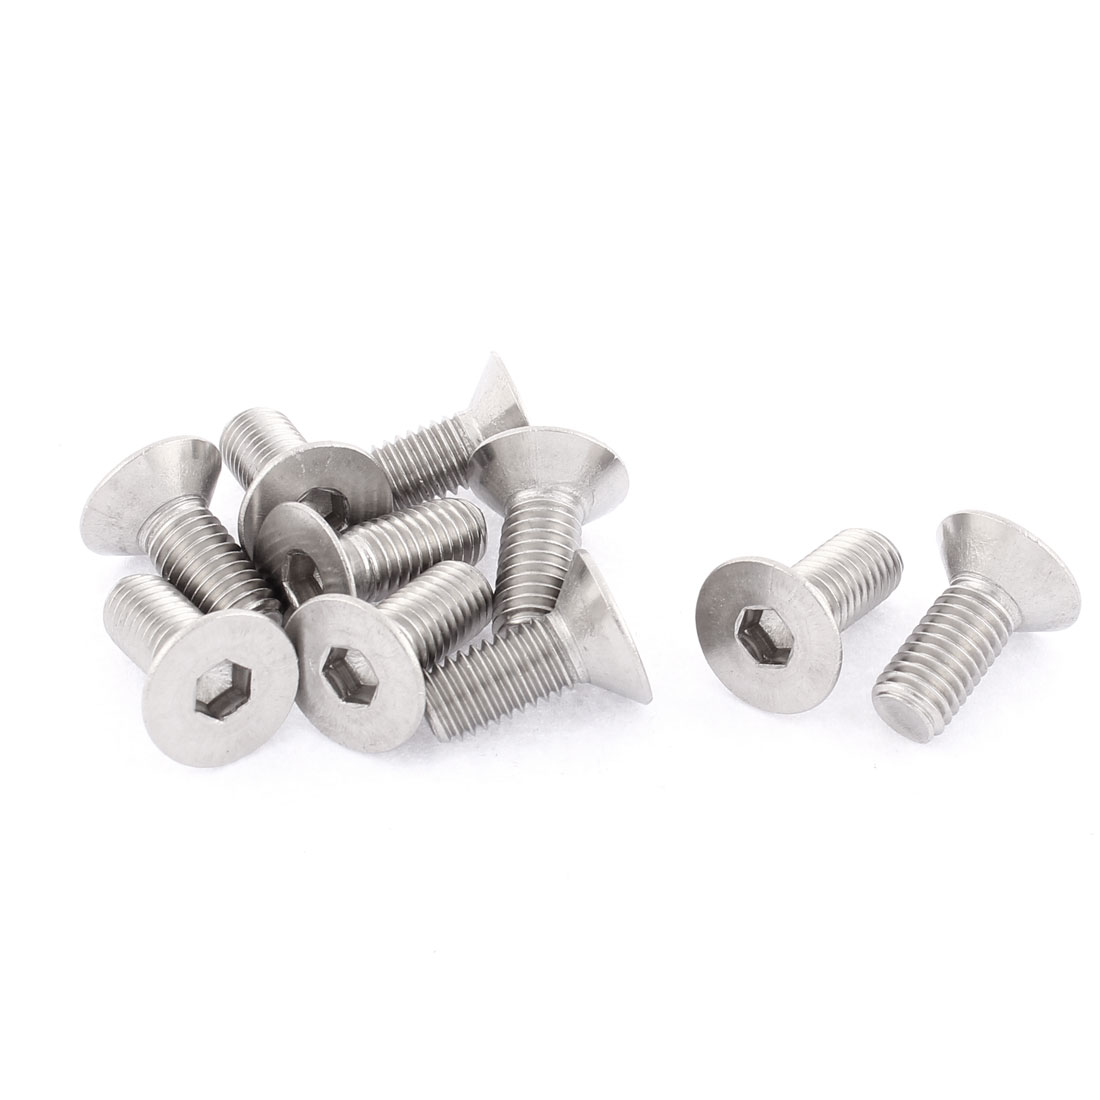 M8 Stainless Steel Hex Socket Countersunk Flat Head Screws Bolt 20mm Long 10pcs